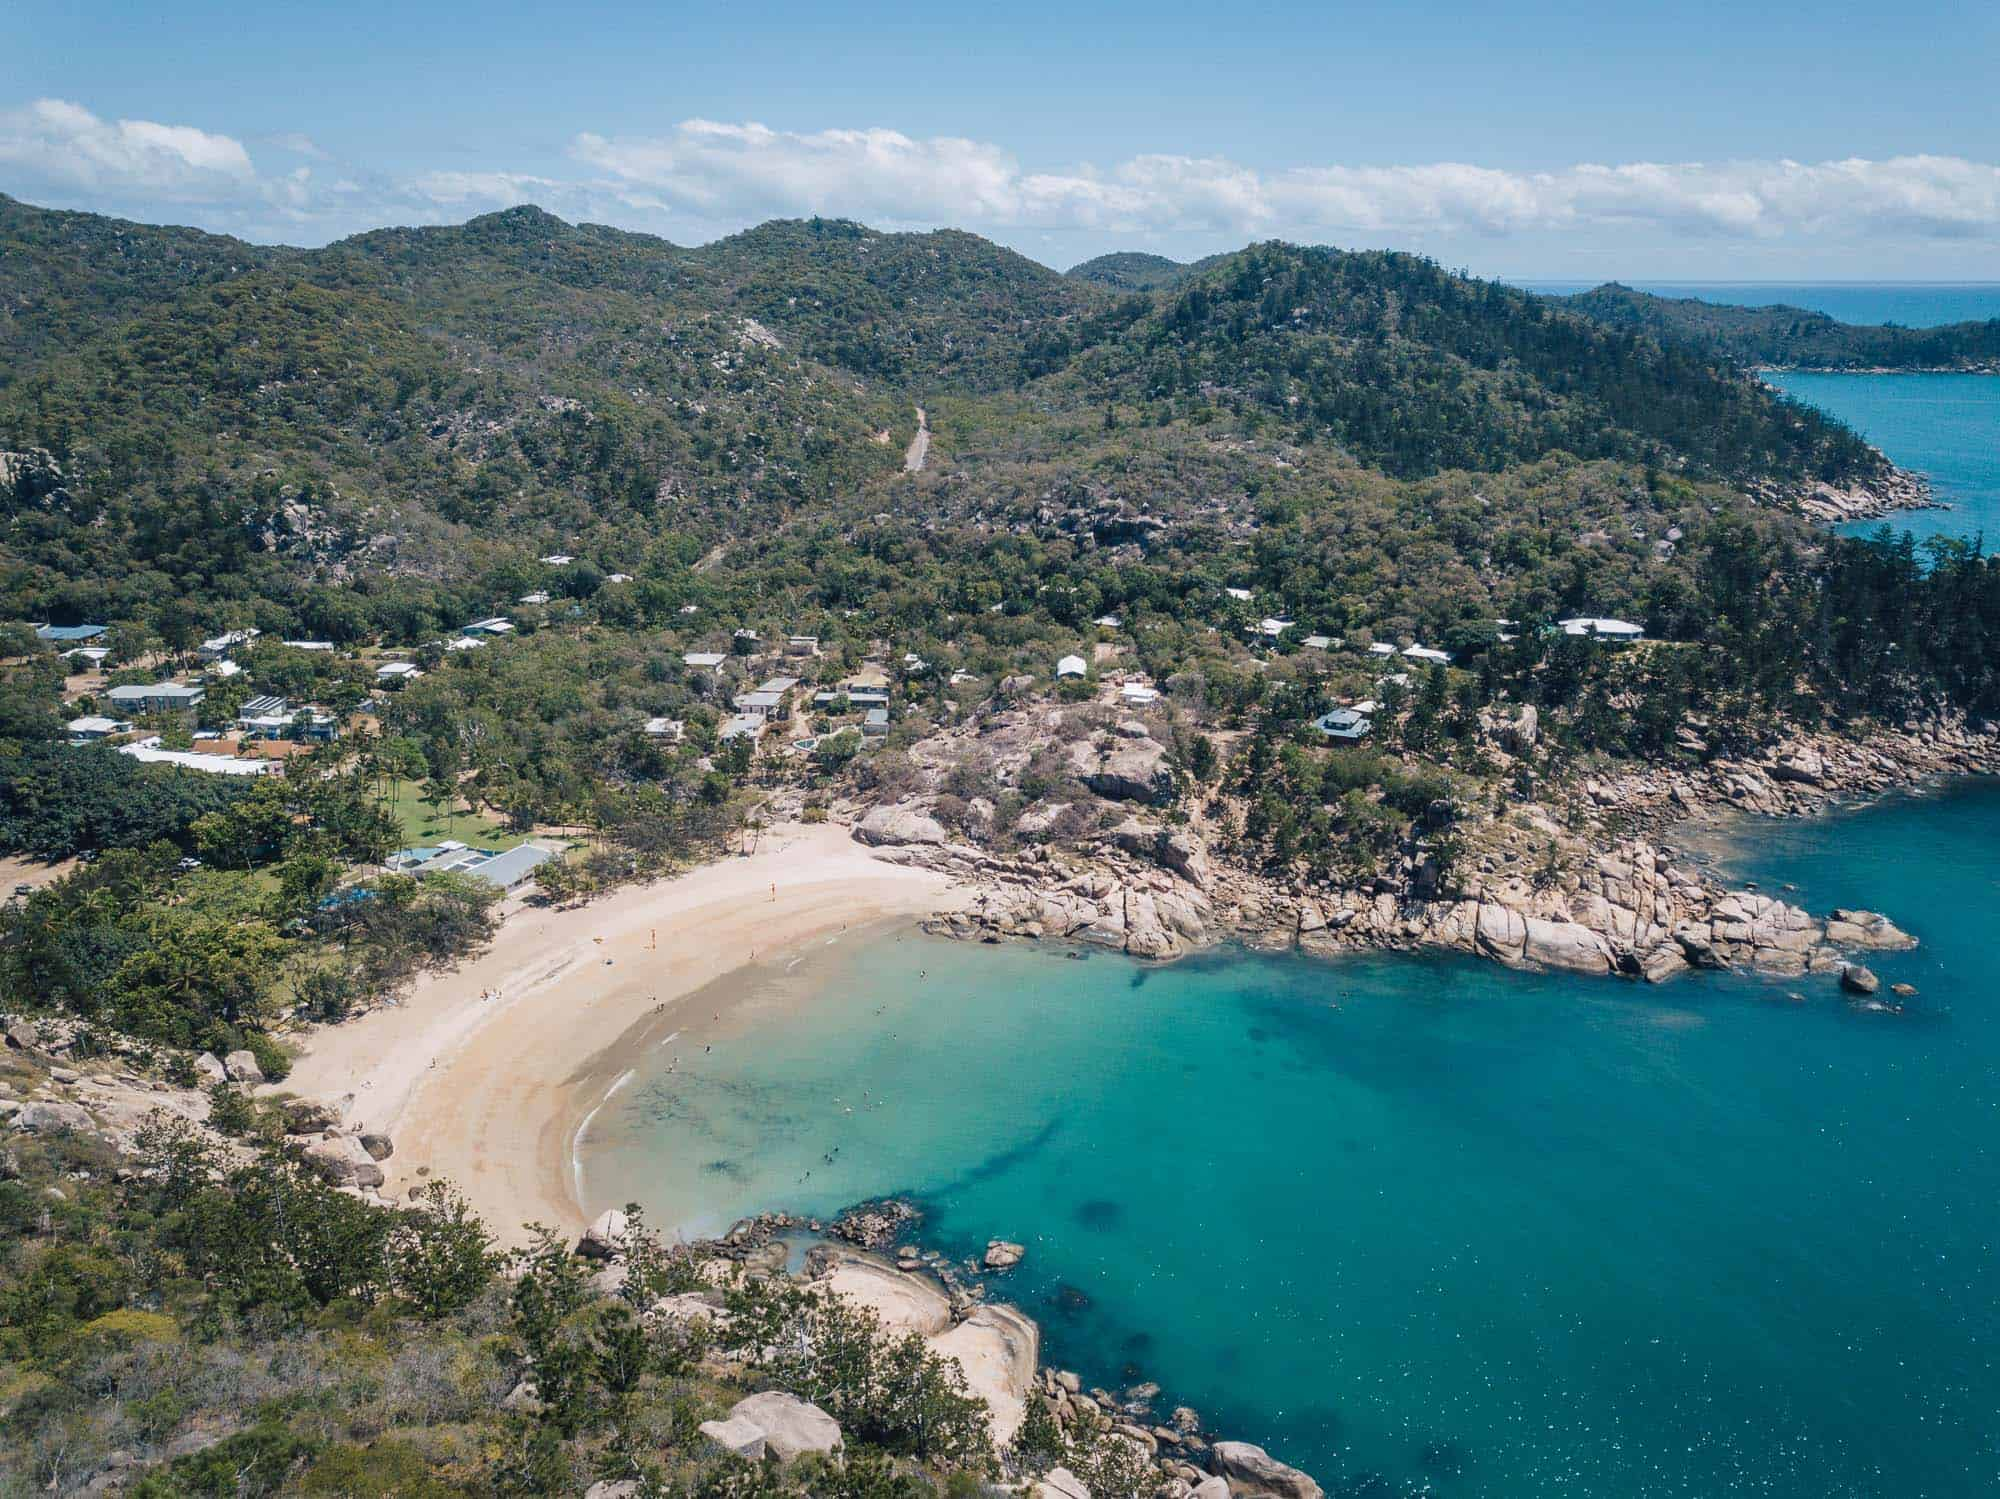 magnetic island, alma bay, things to do on magnetic island, things to do in magnetic island, magnetic island australia, magnetic island queensland, airbnb magnetic island